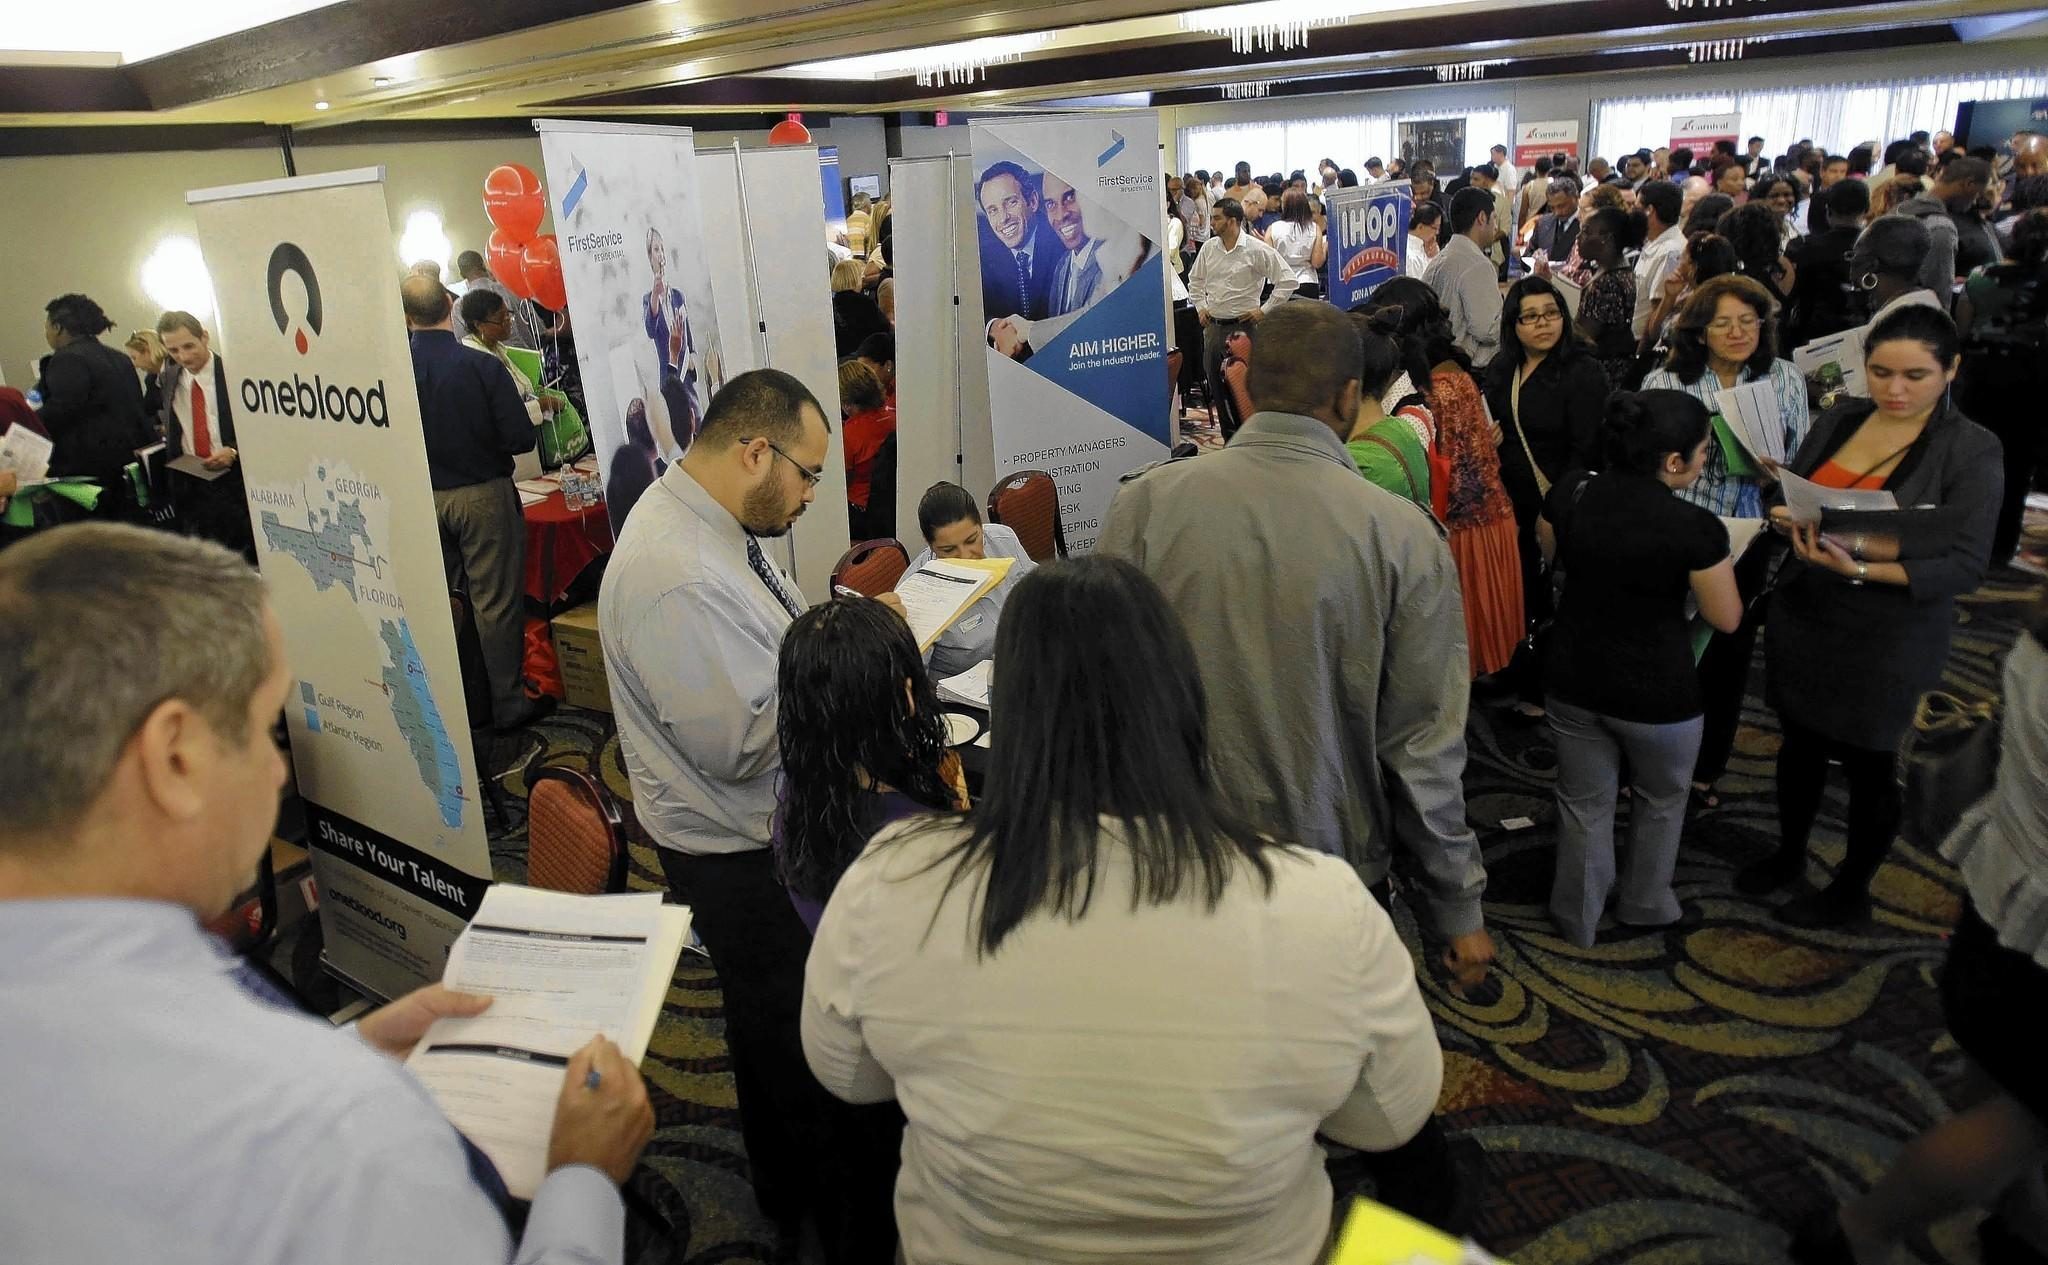 People look for opportunities at a job fair in Miami Lakes, Fla., last summer.